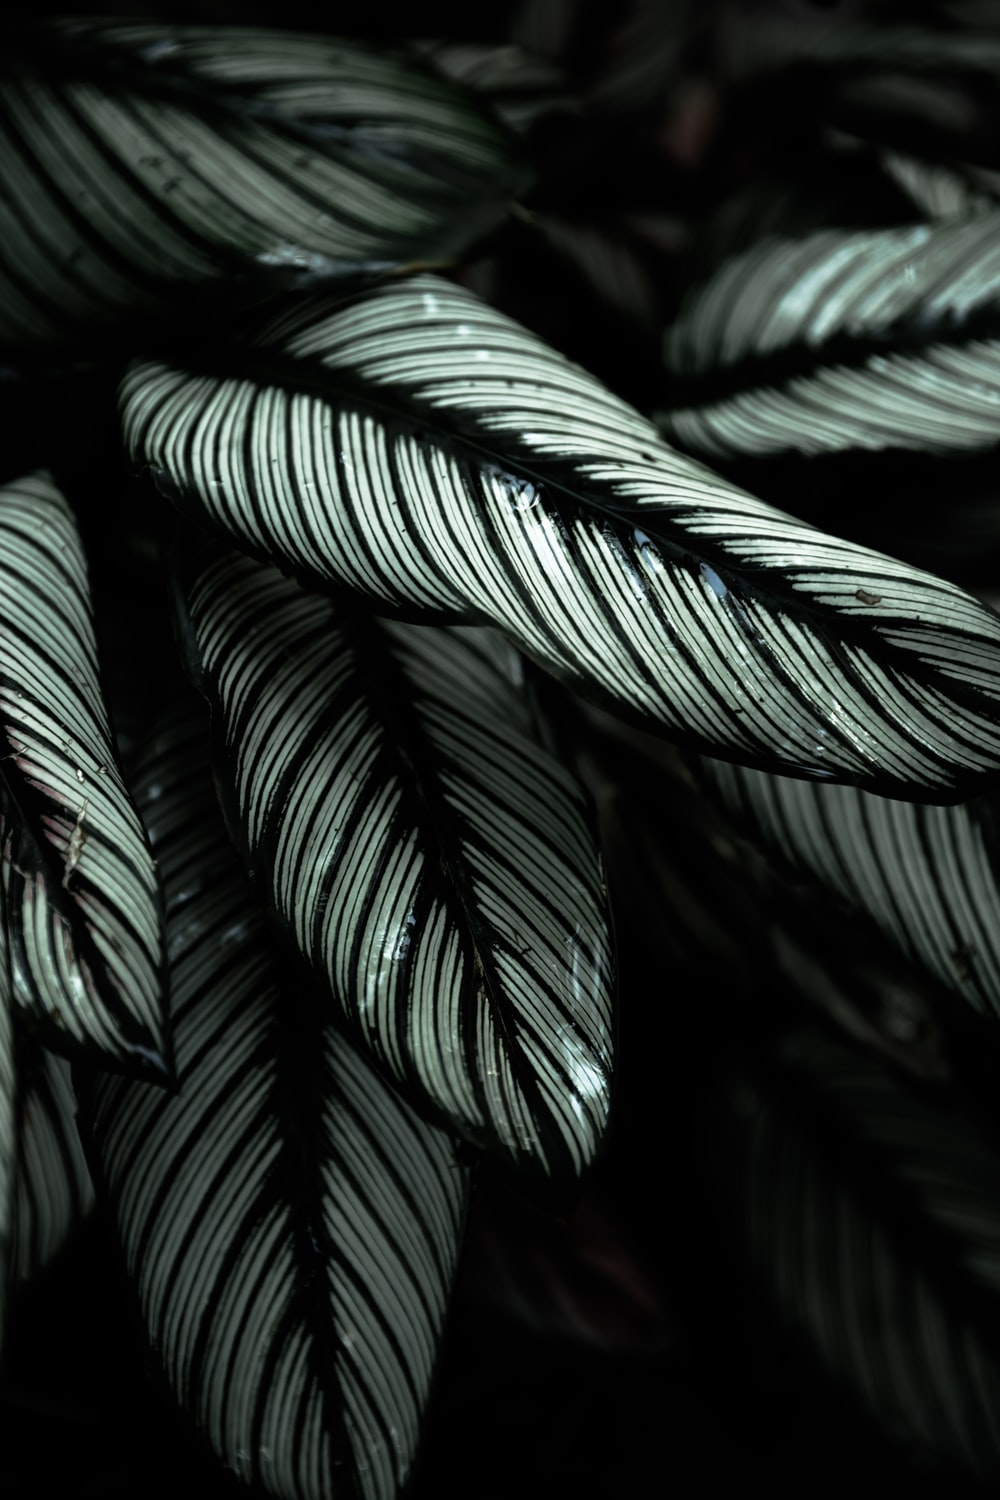 gray and black-leafed plants